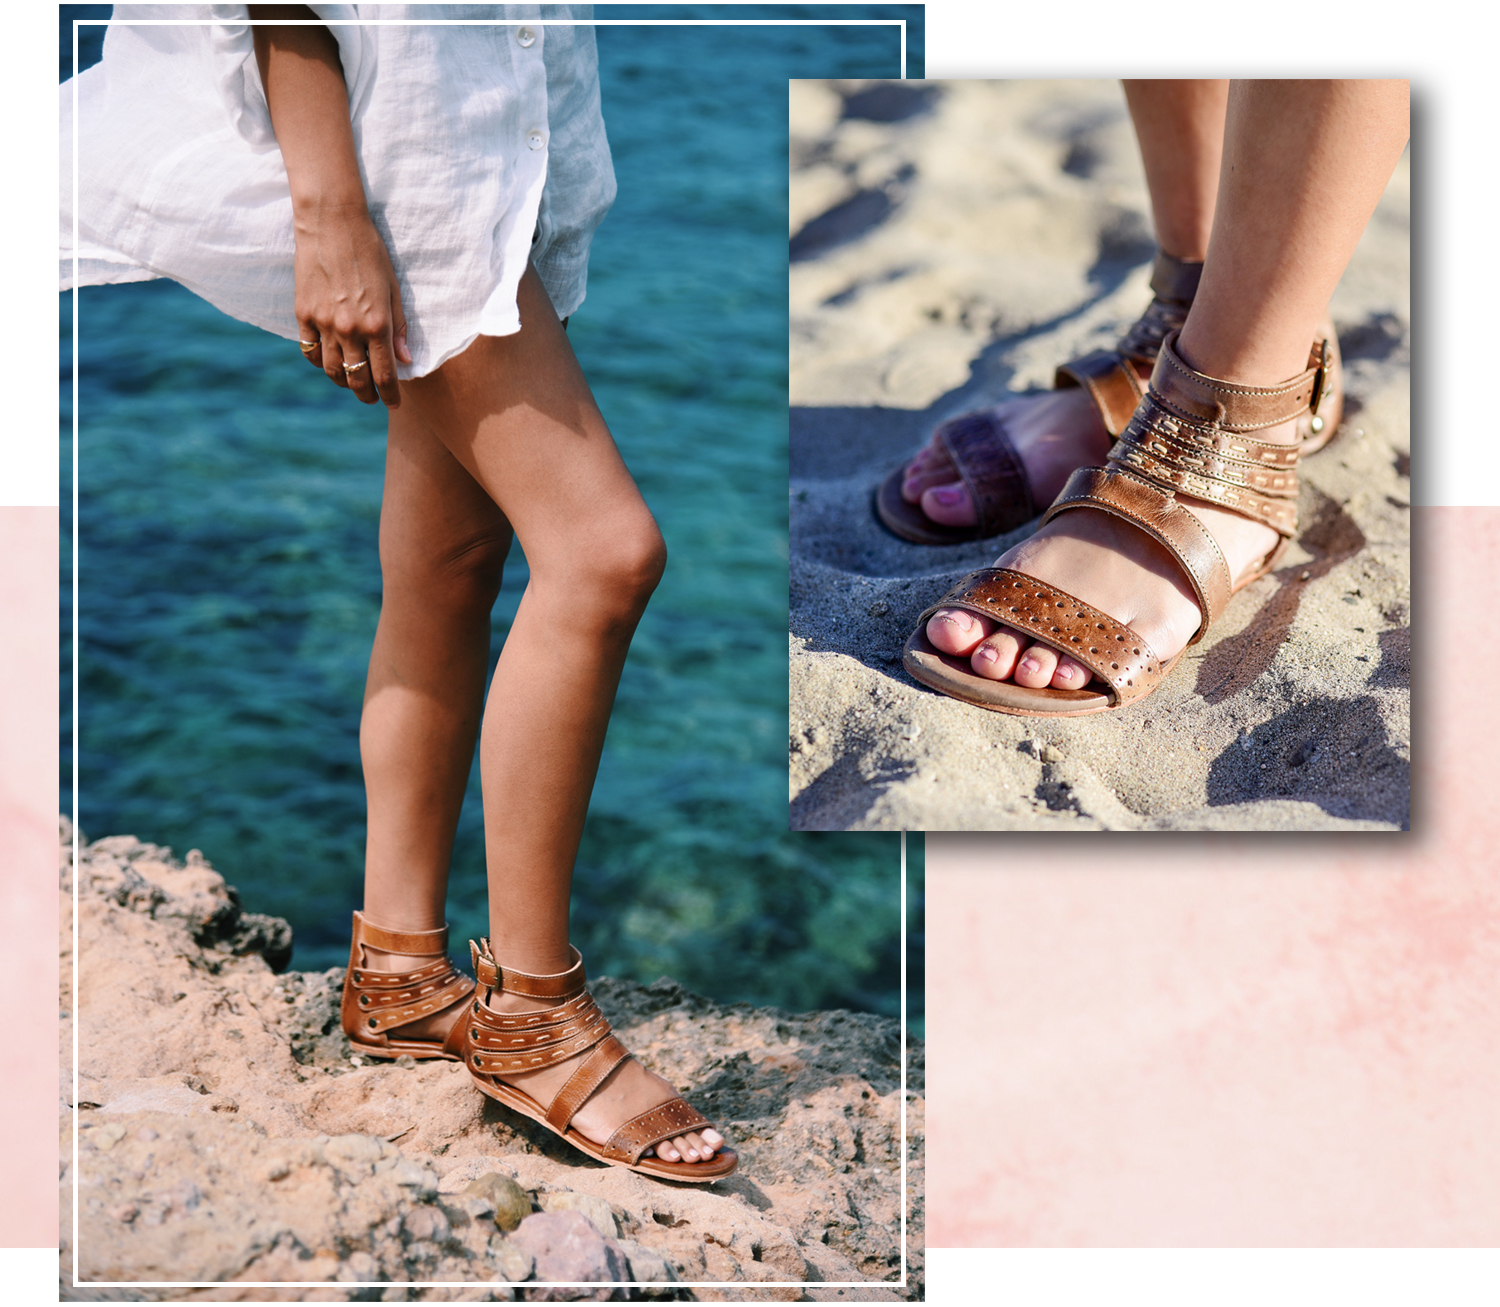 Slip into new sandals today!